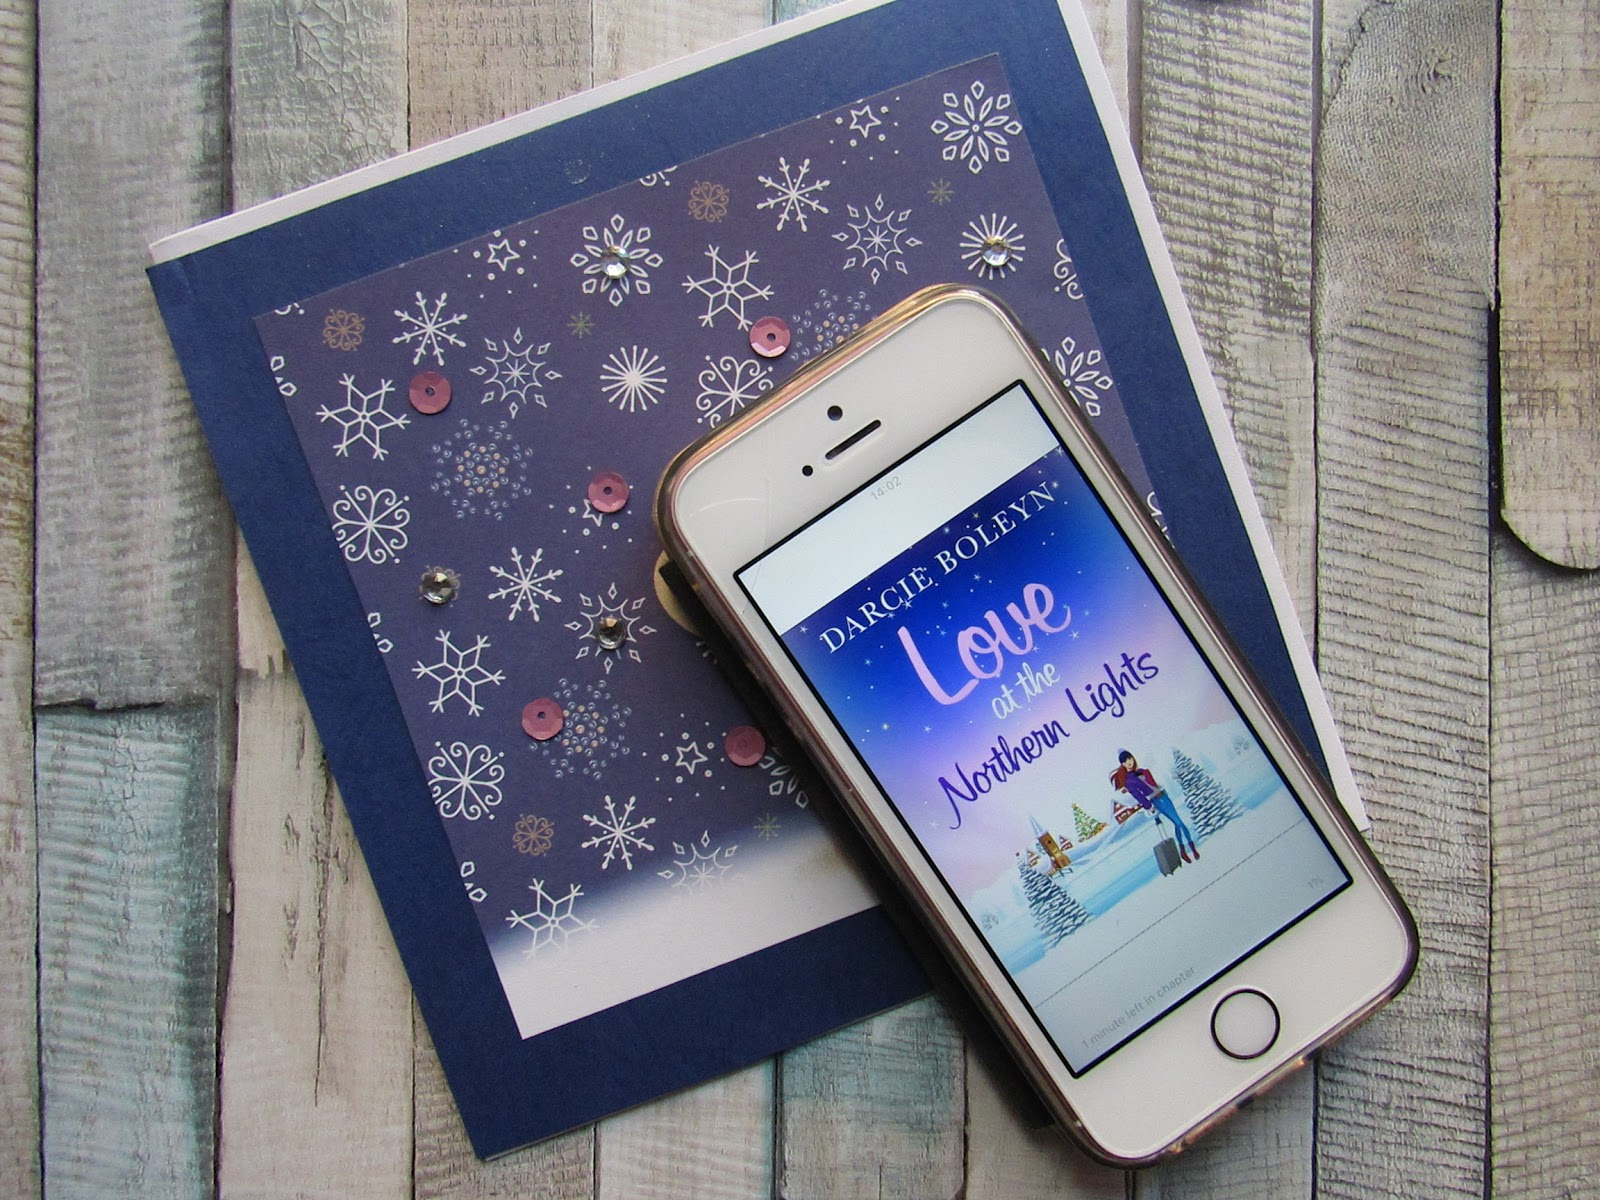 Love At The Northern Lights by Darcie Boleyn book tour feature on Blooming Fiction book blog